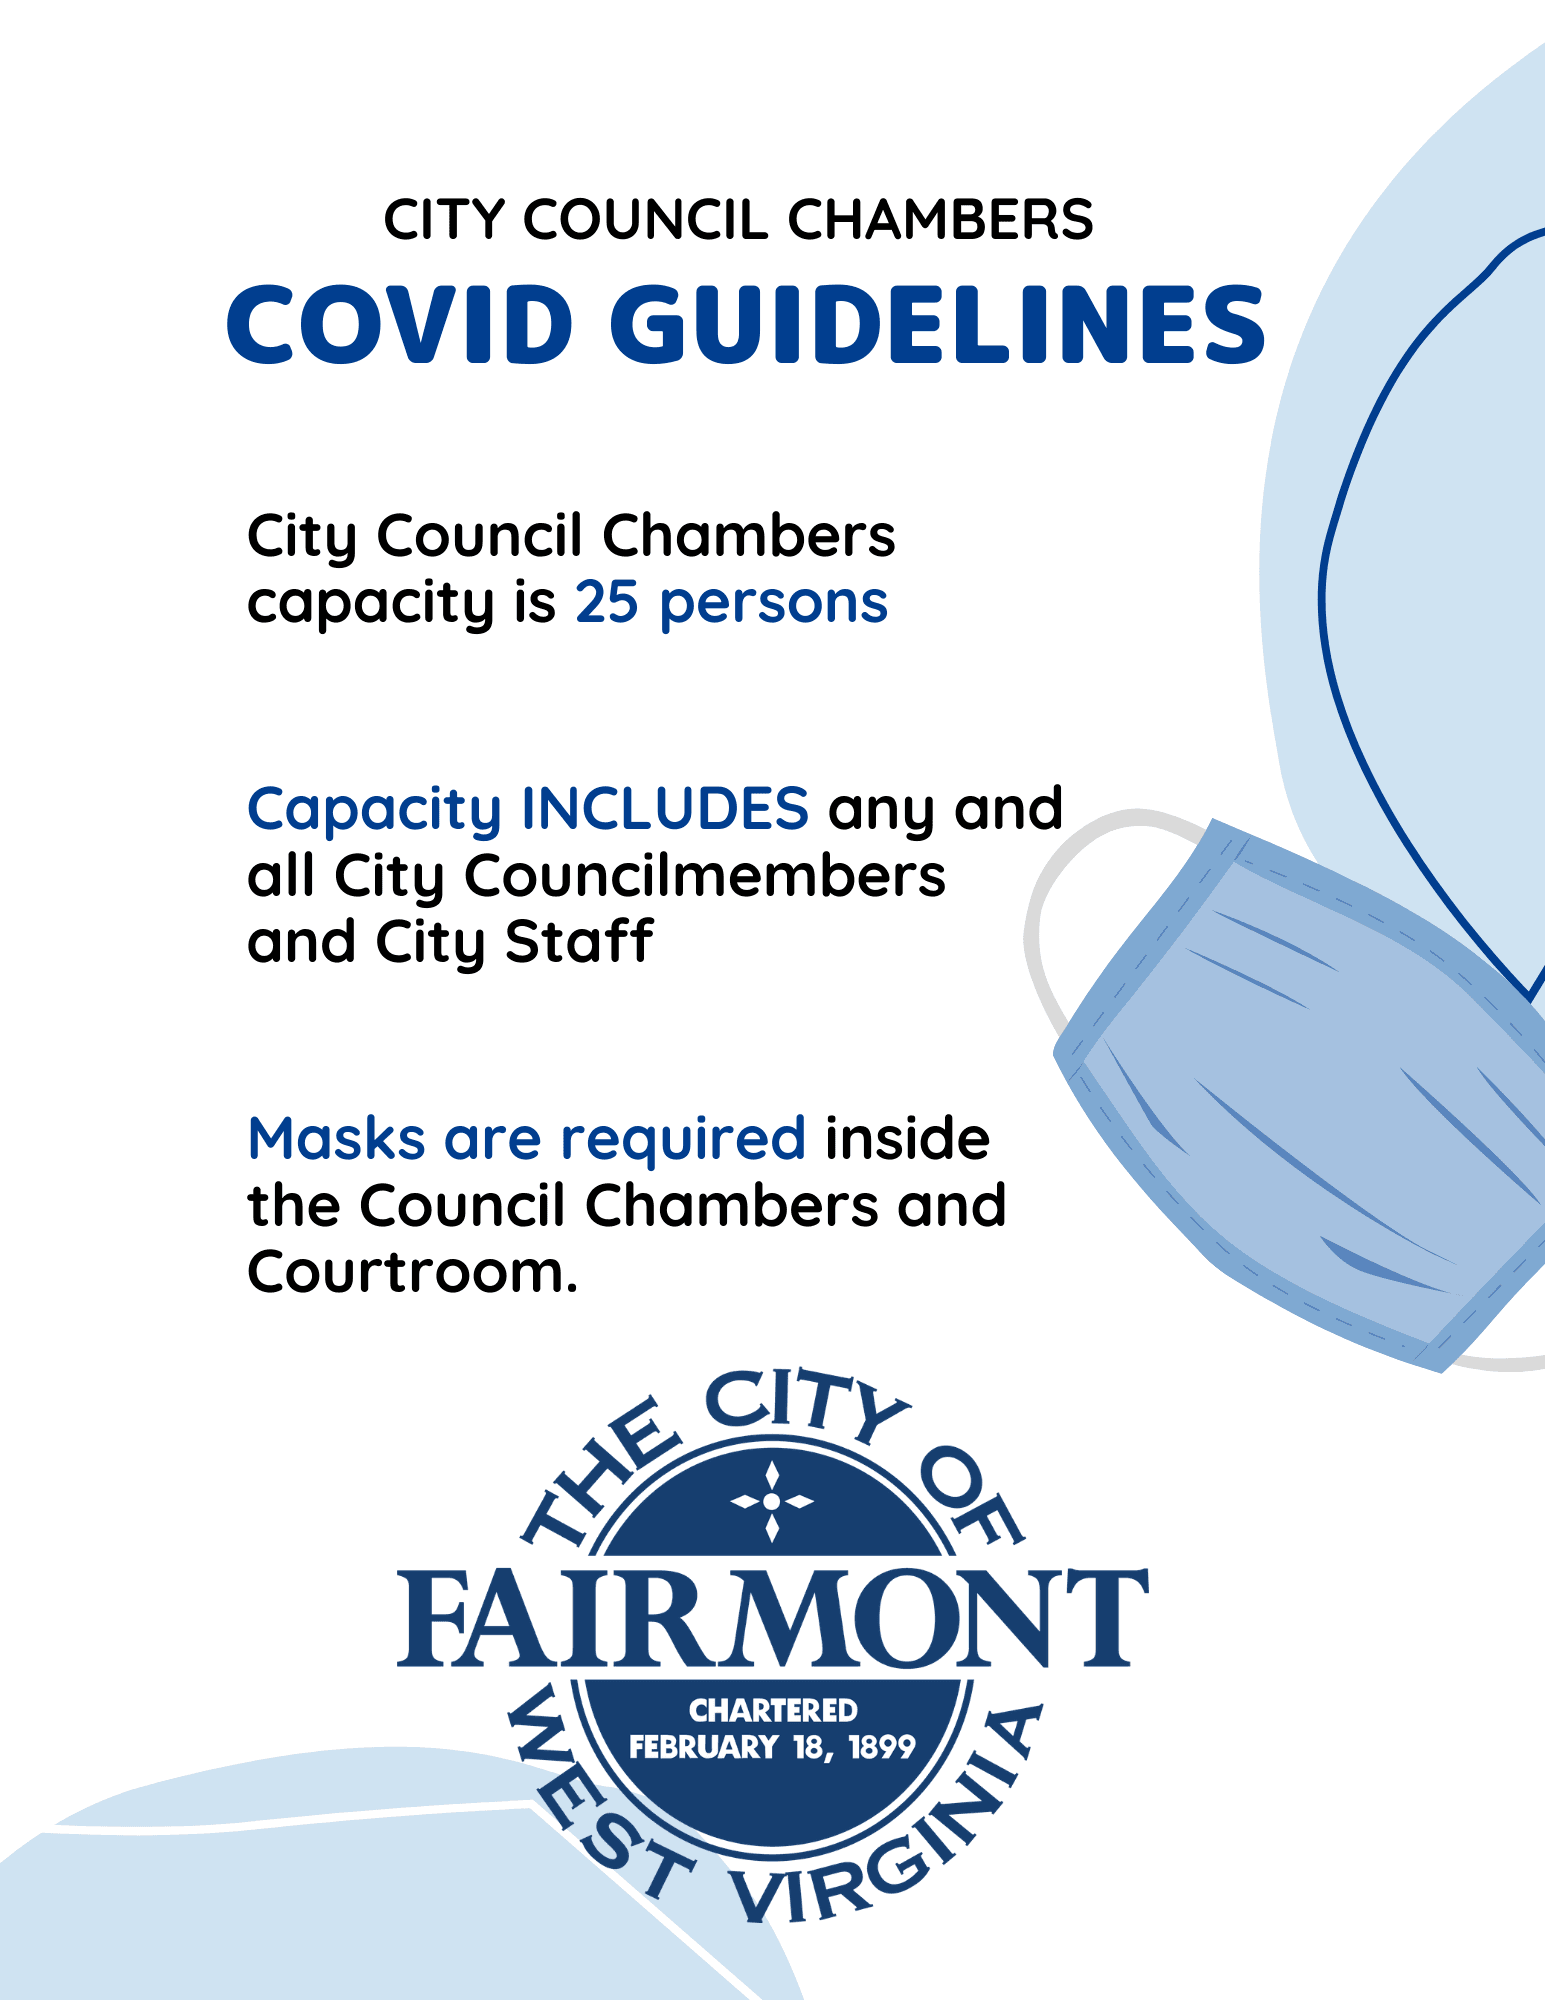 City Council COVID Guidelines - Council chambers will contain a maximum of 25 people.